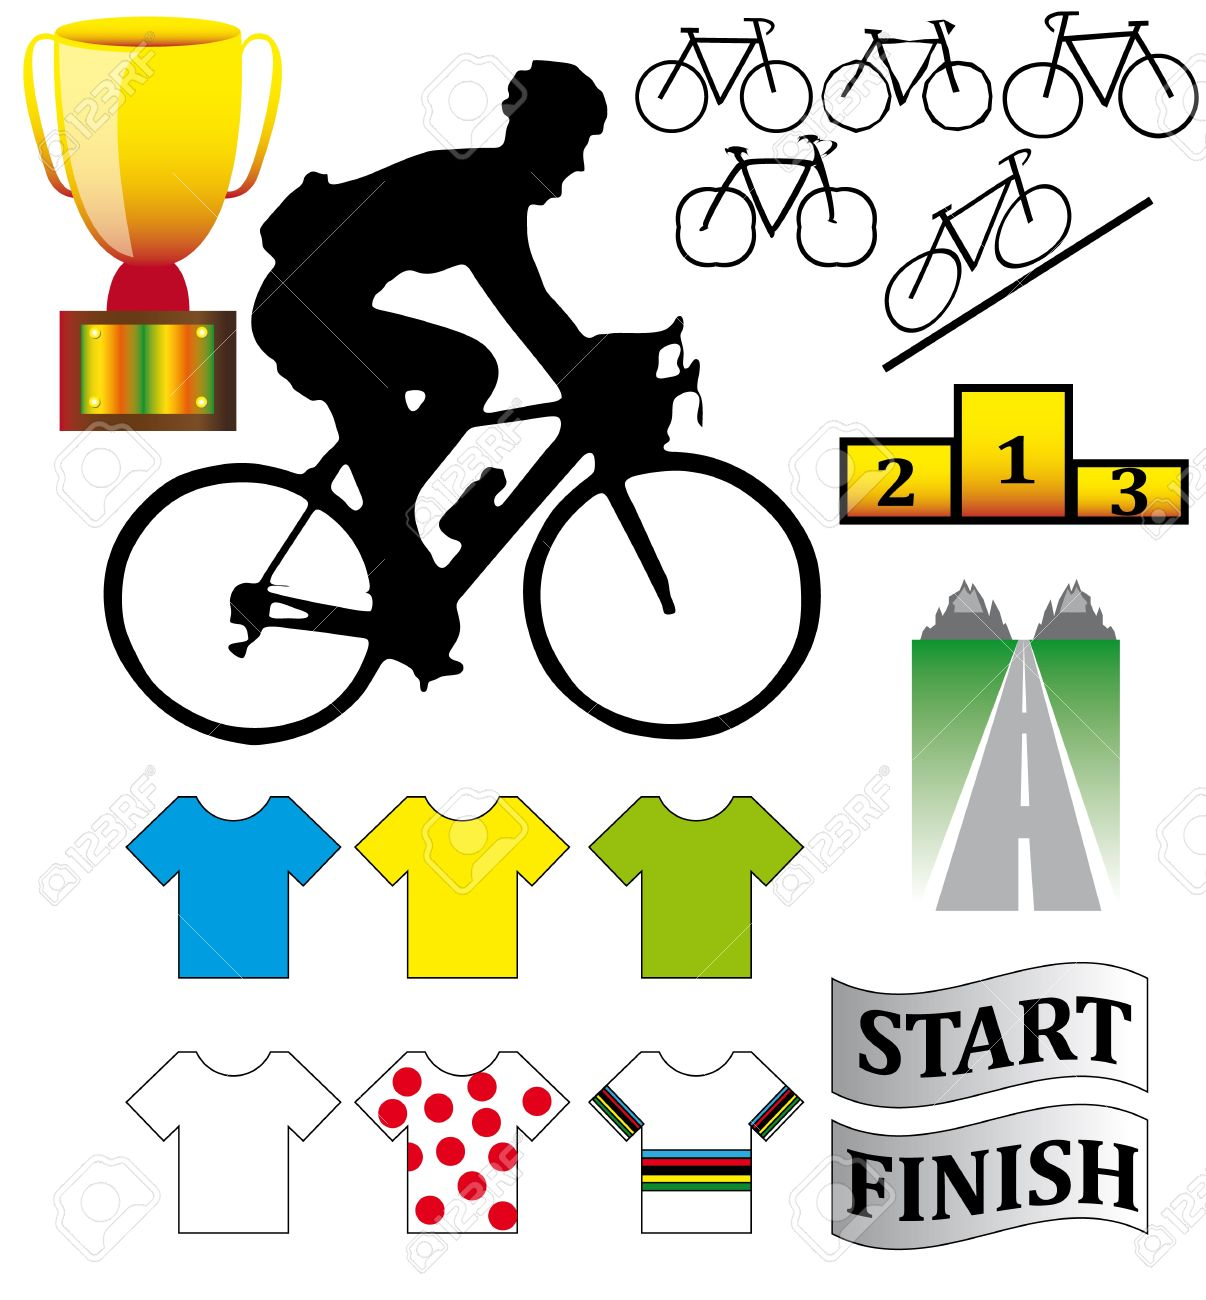 Cycle racing bikes, shirts and other illustrations Stock Vector - 10856846